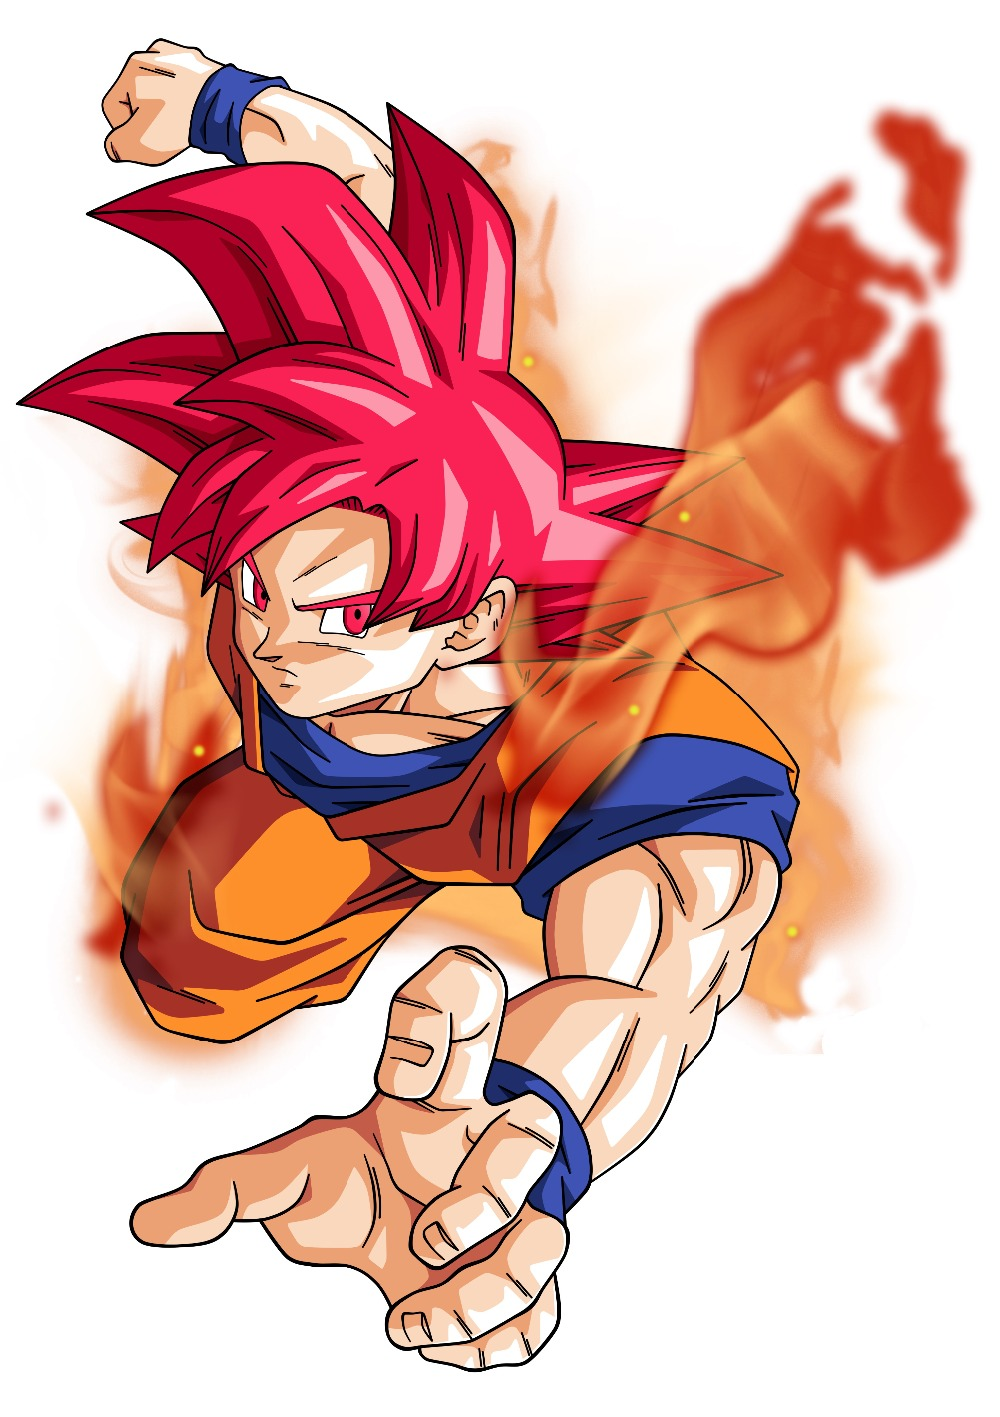 Dragon ball z gt goku cool art silk poster 24x32 inch door home decor cool home decor olivia decor decor for your home and office